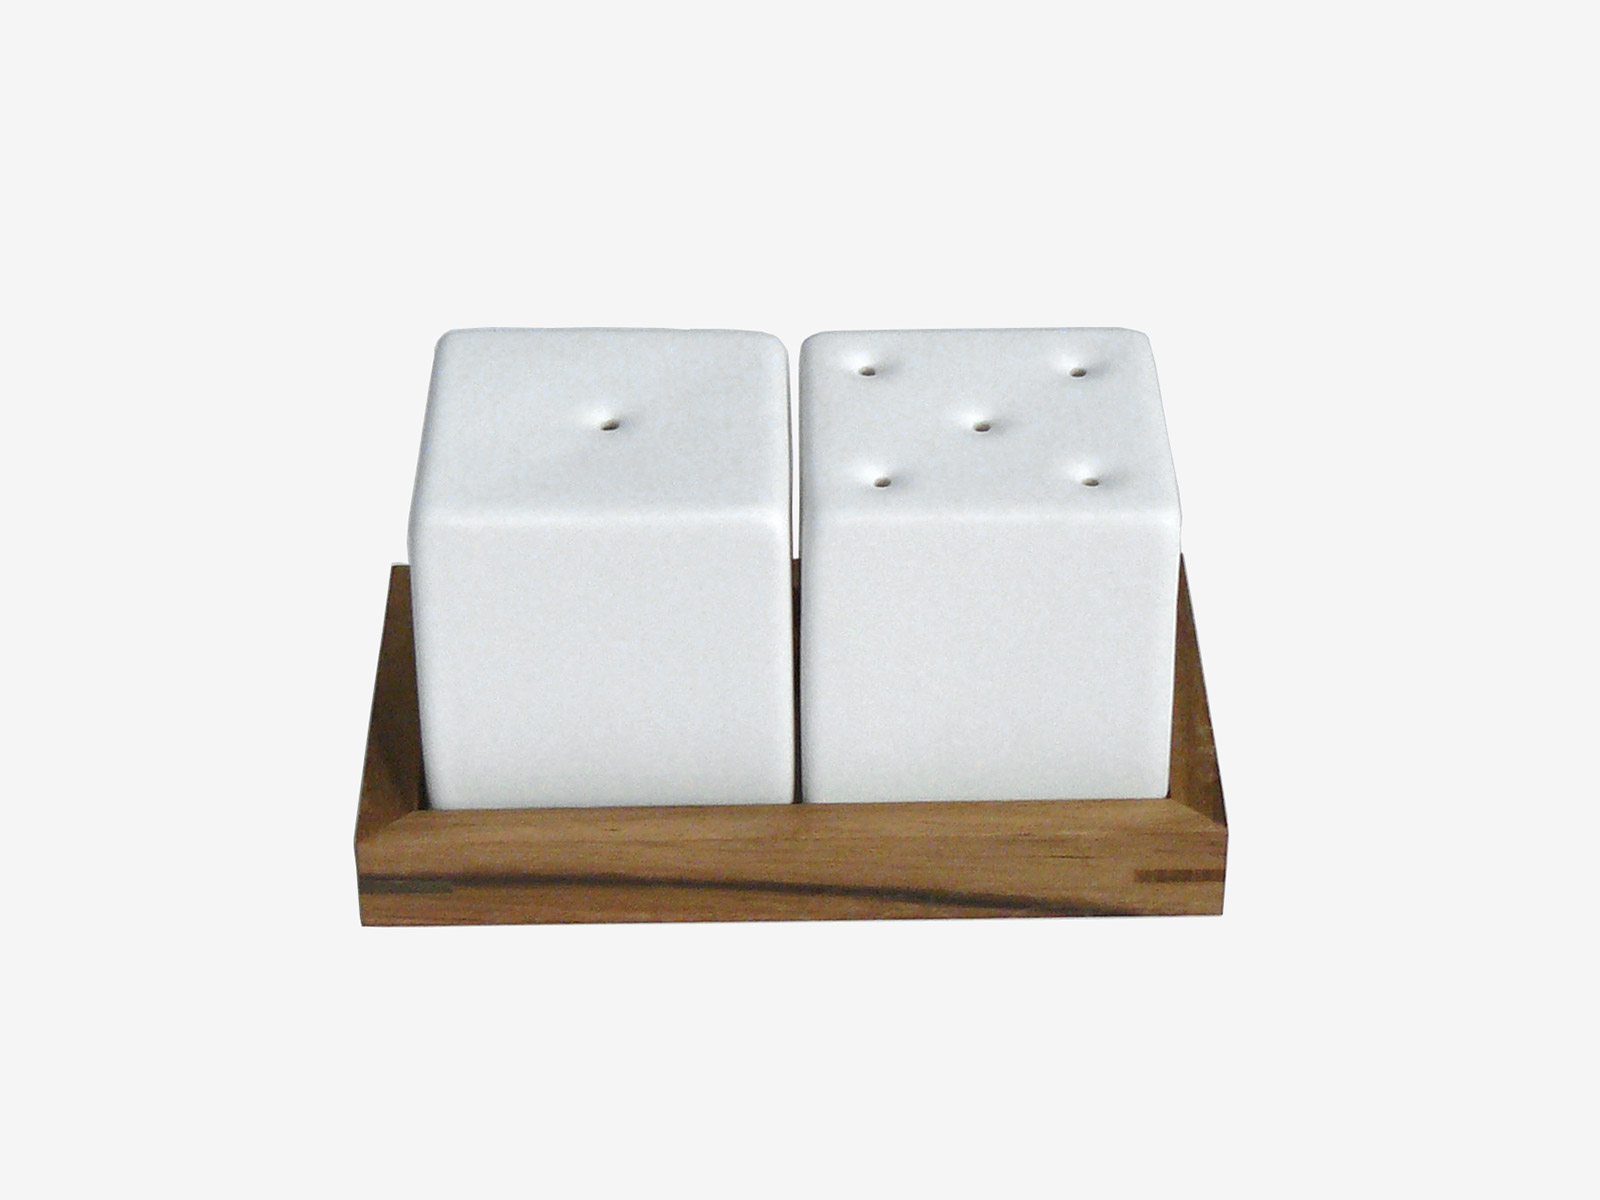 Spice Dice salt and pepper shakers